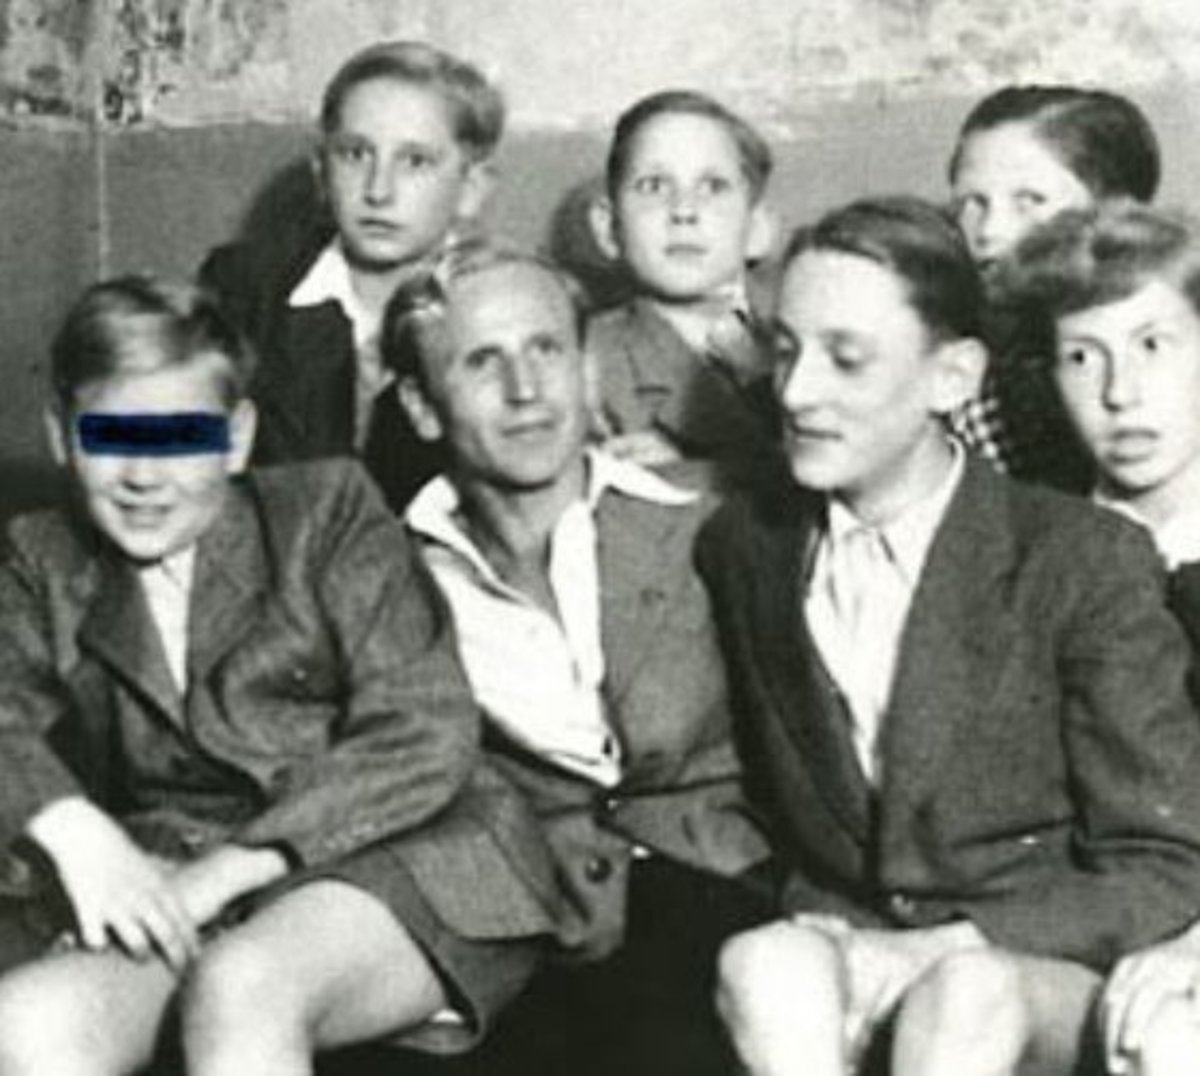 Paul Schäfer (center) in Colonia Dignidad with boys from the commune.